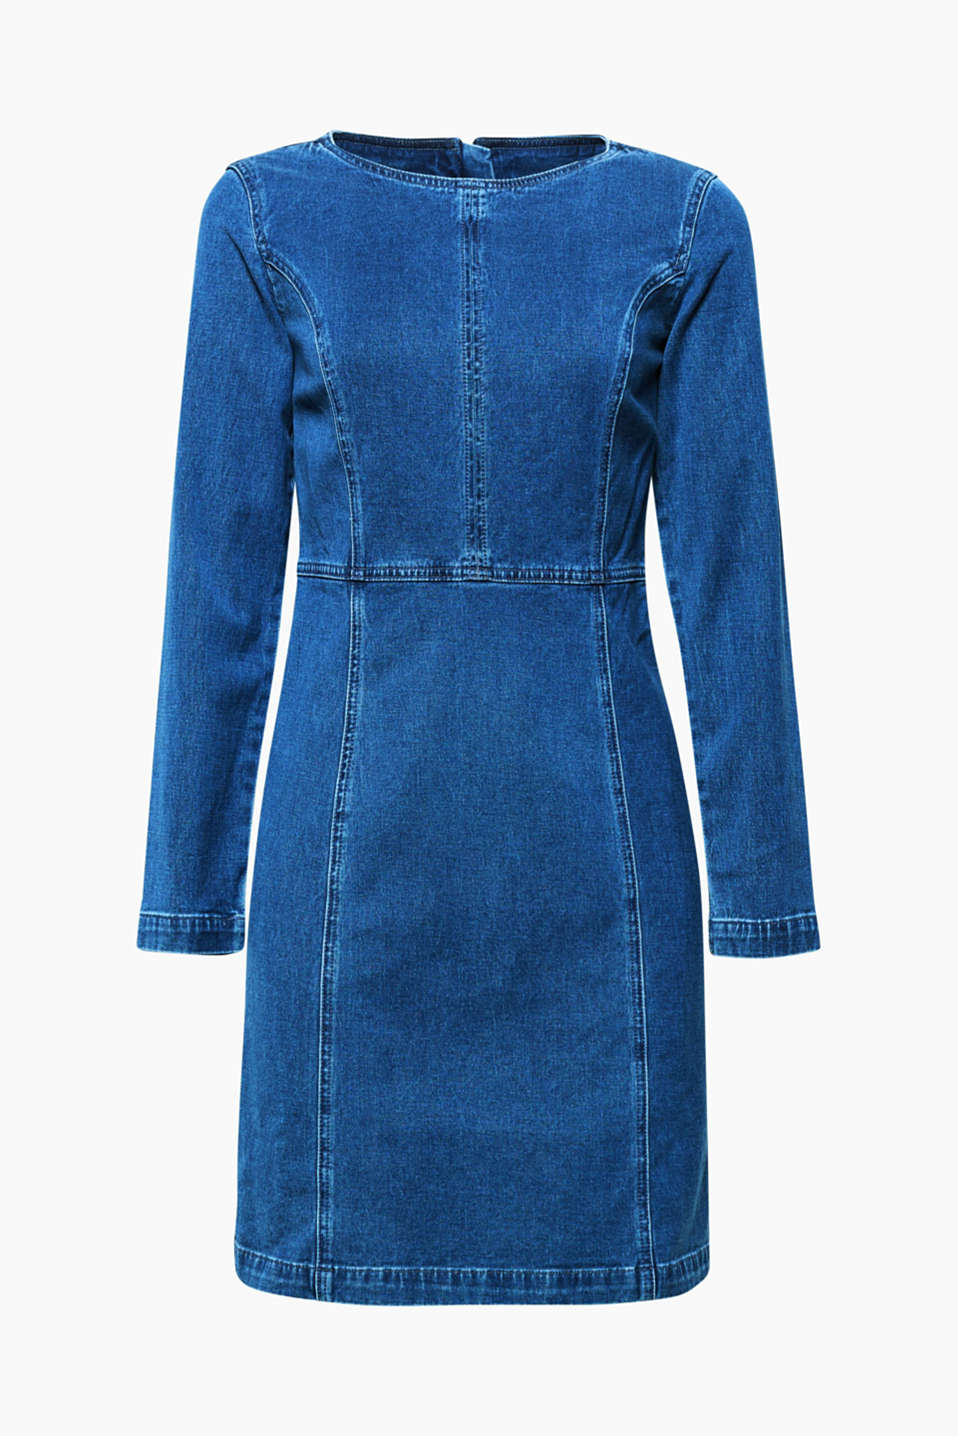 This denim dress in washed stretch denim creates a casually feminine look.